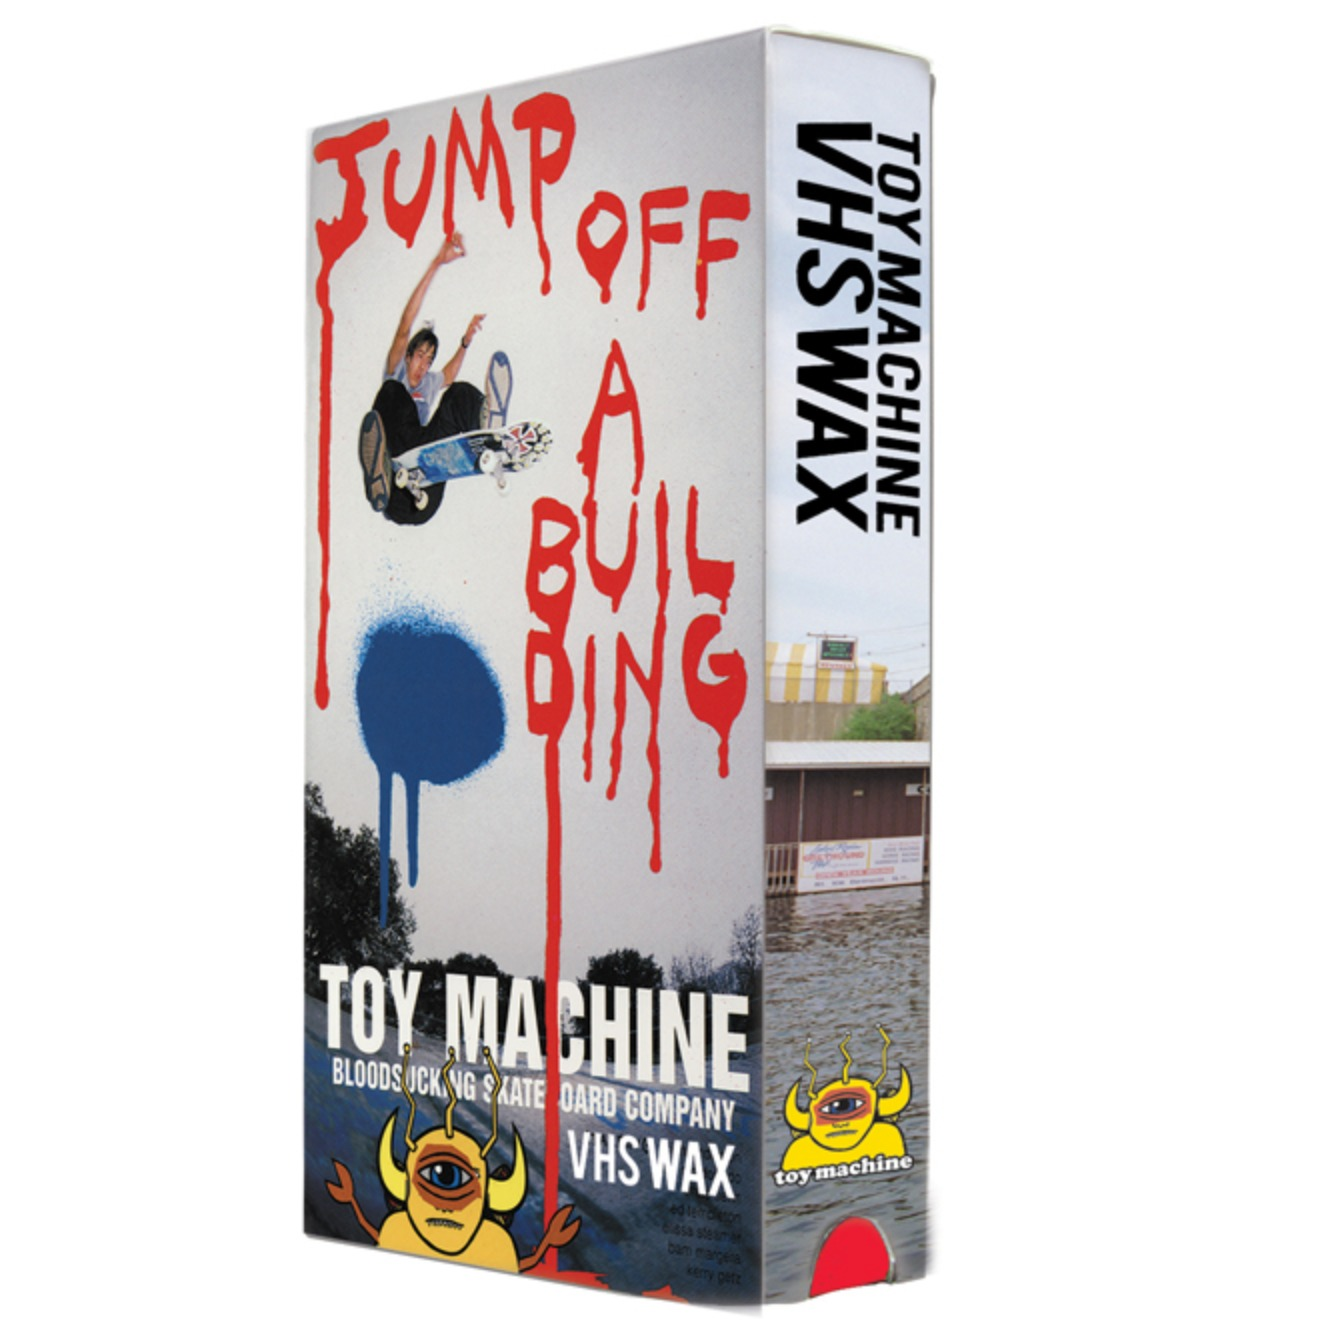 Toy Machine - Jump Off a Building - VHS Wax